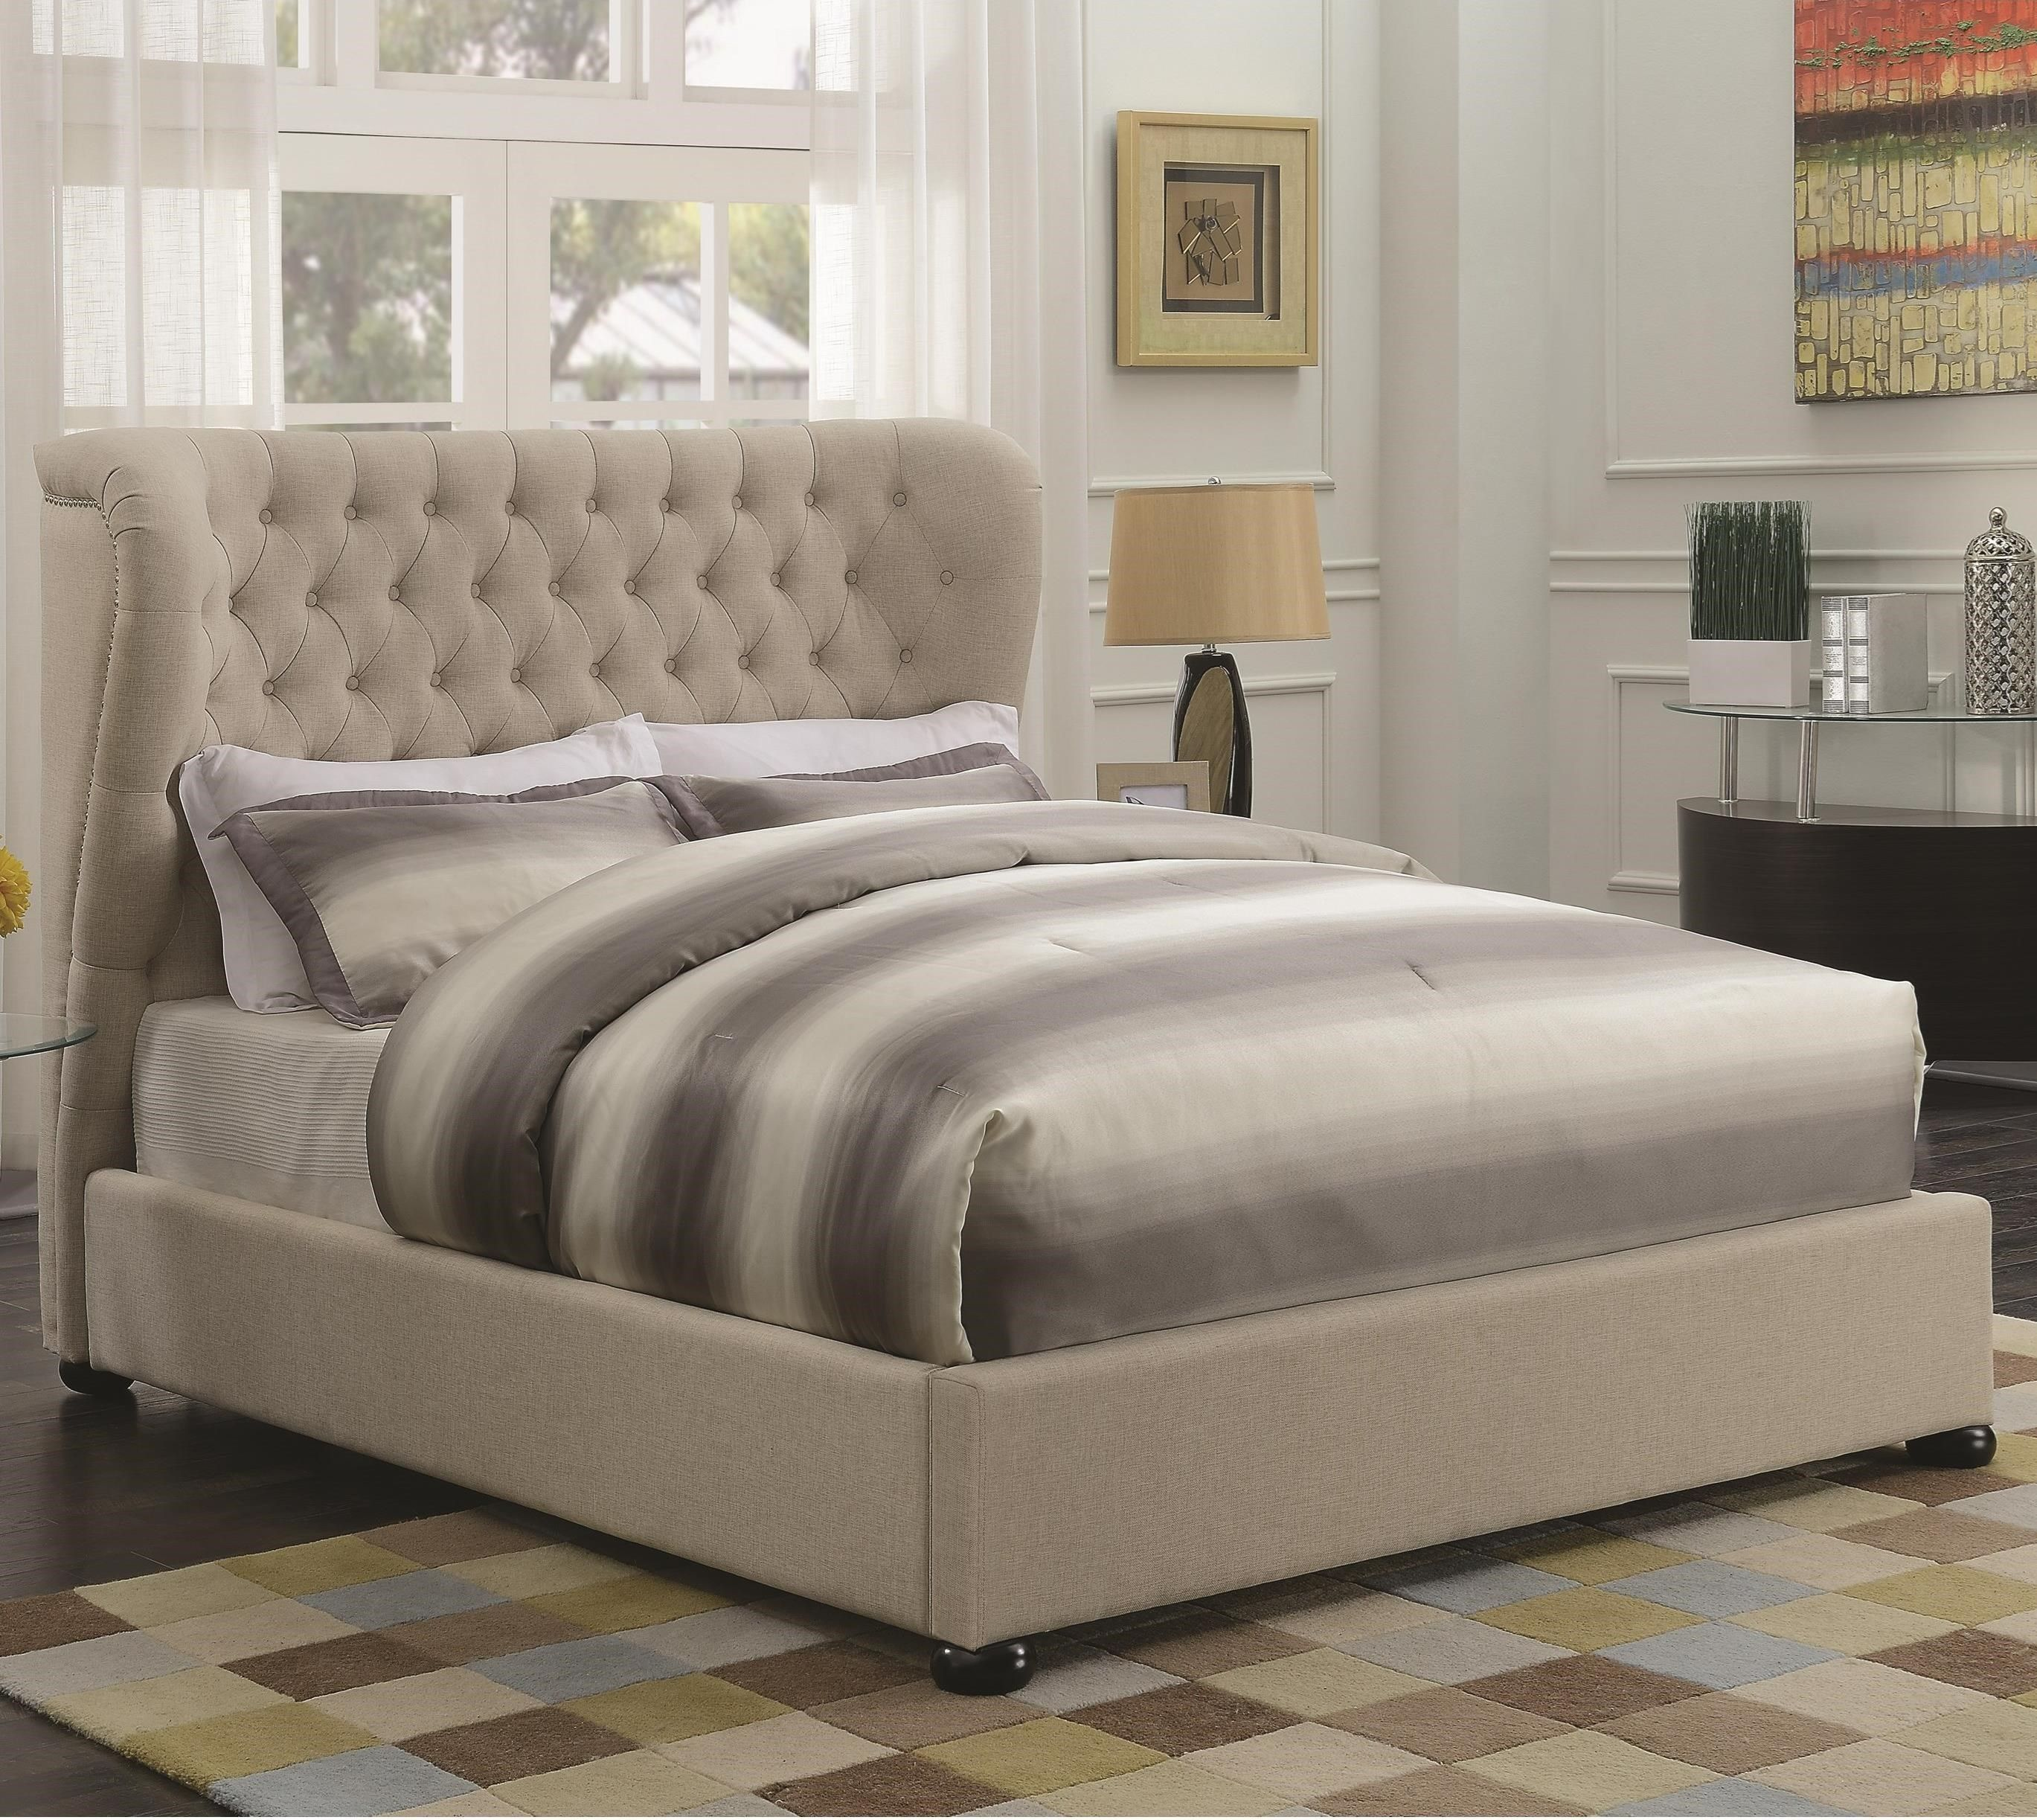 Newburgh Full Upholstered Bed By Coaster Upholstered Panel Bed